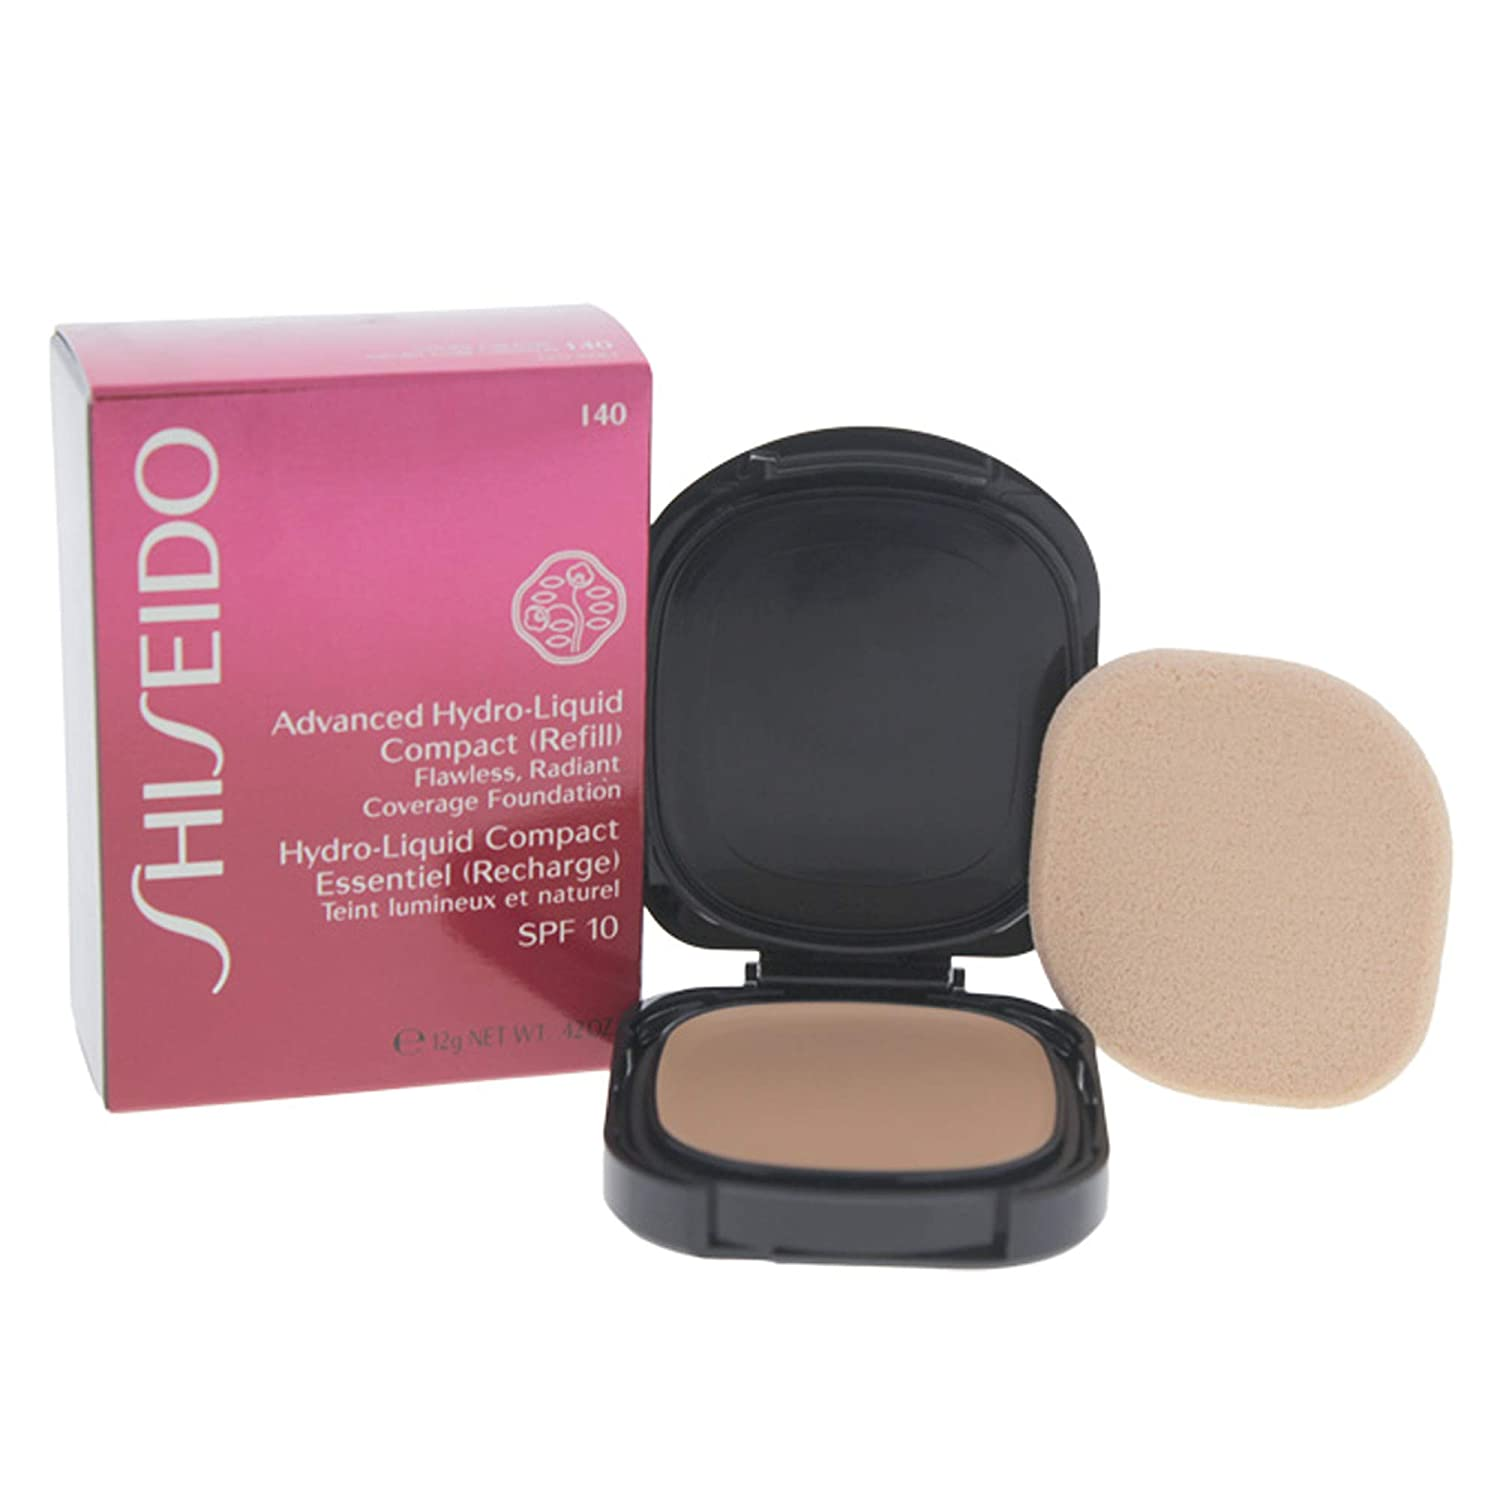 Shiseido Foundation femme/woman, Advanced Hydro-Liquid Compact Refill Nummer I40 Natural Fair Ivory, 1er Pack (1 x 12 ml) 729238500648 SHI00124